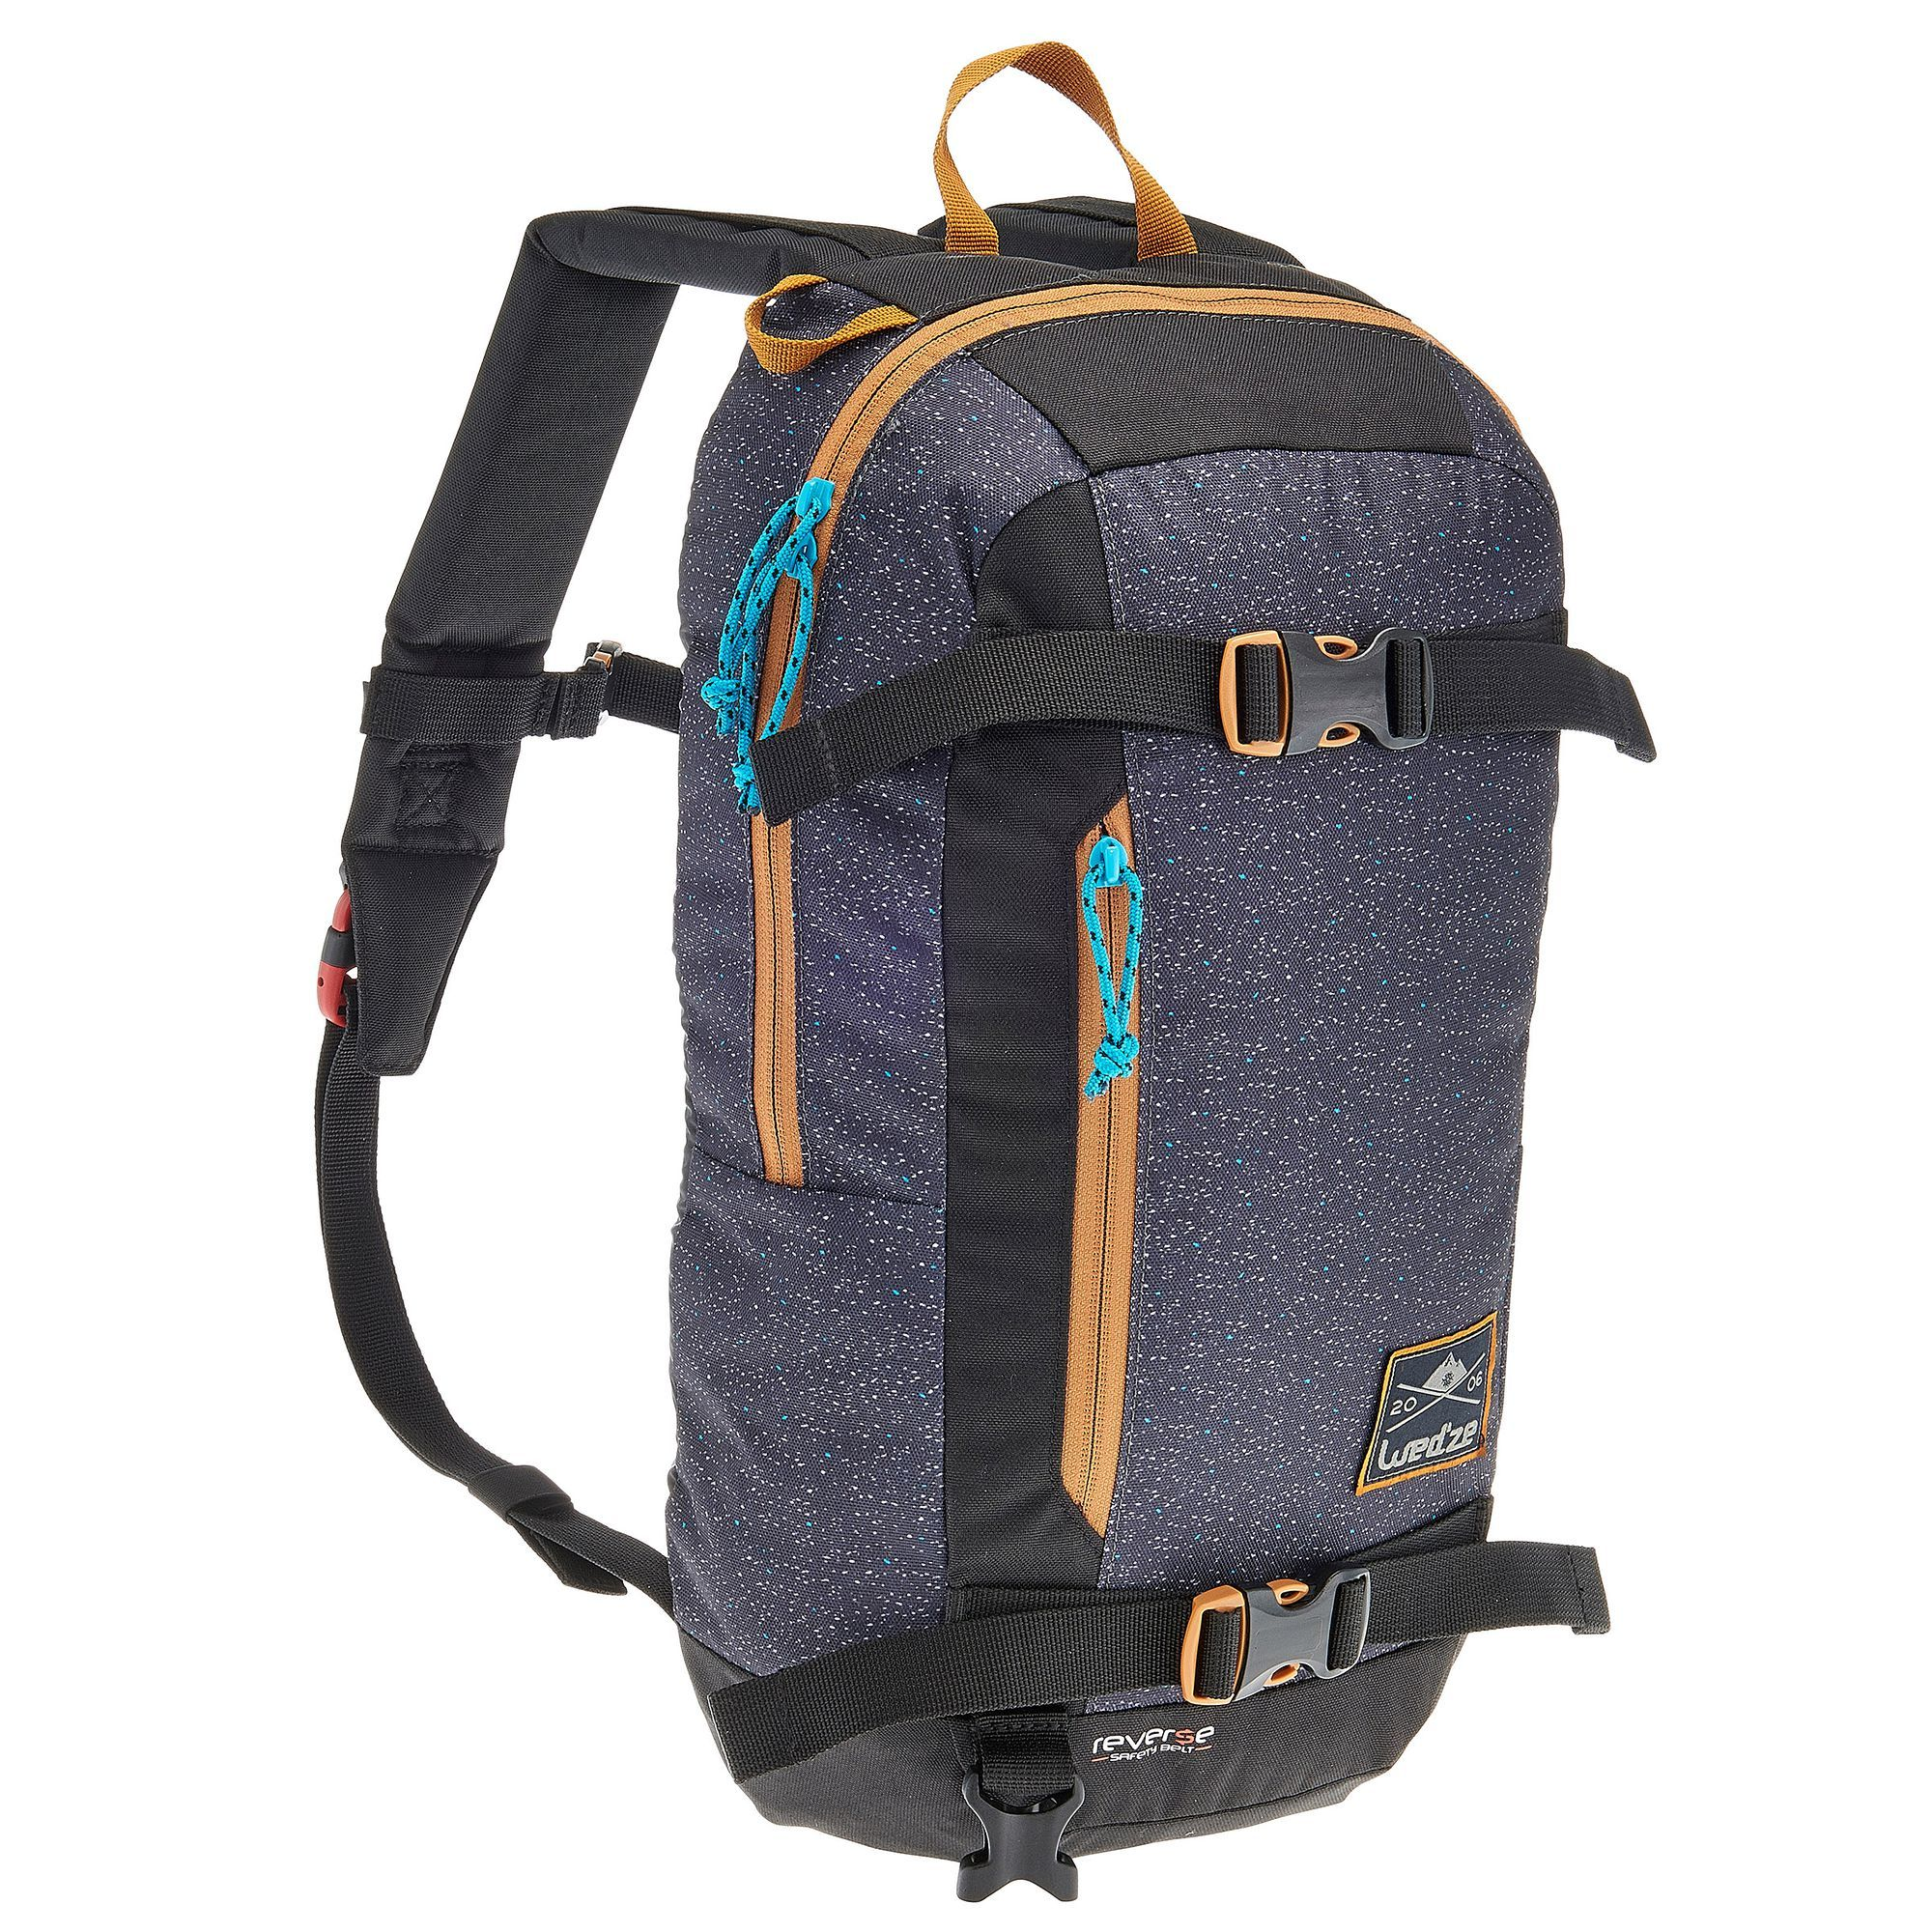 6f0c5bf43a Quechua N Hiking 30 Litre Backpack